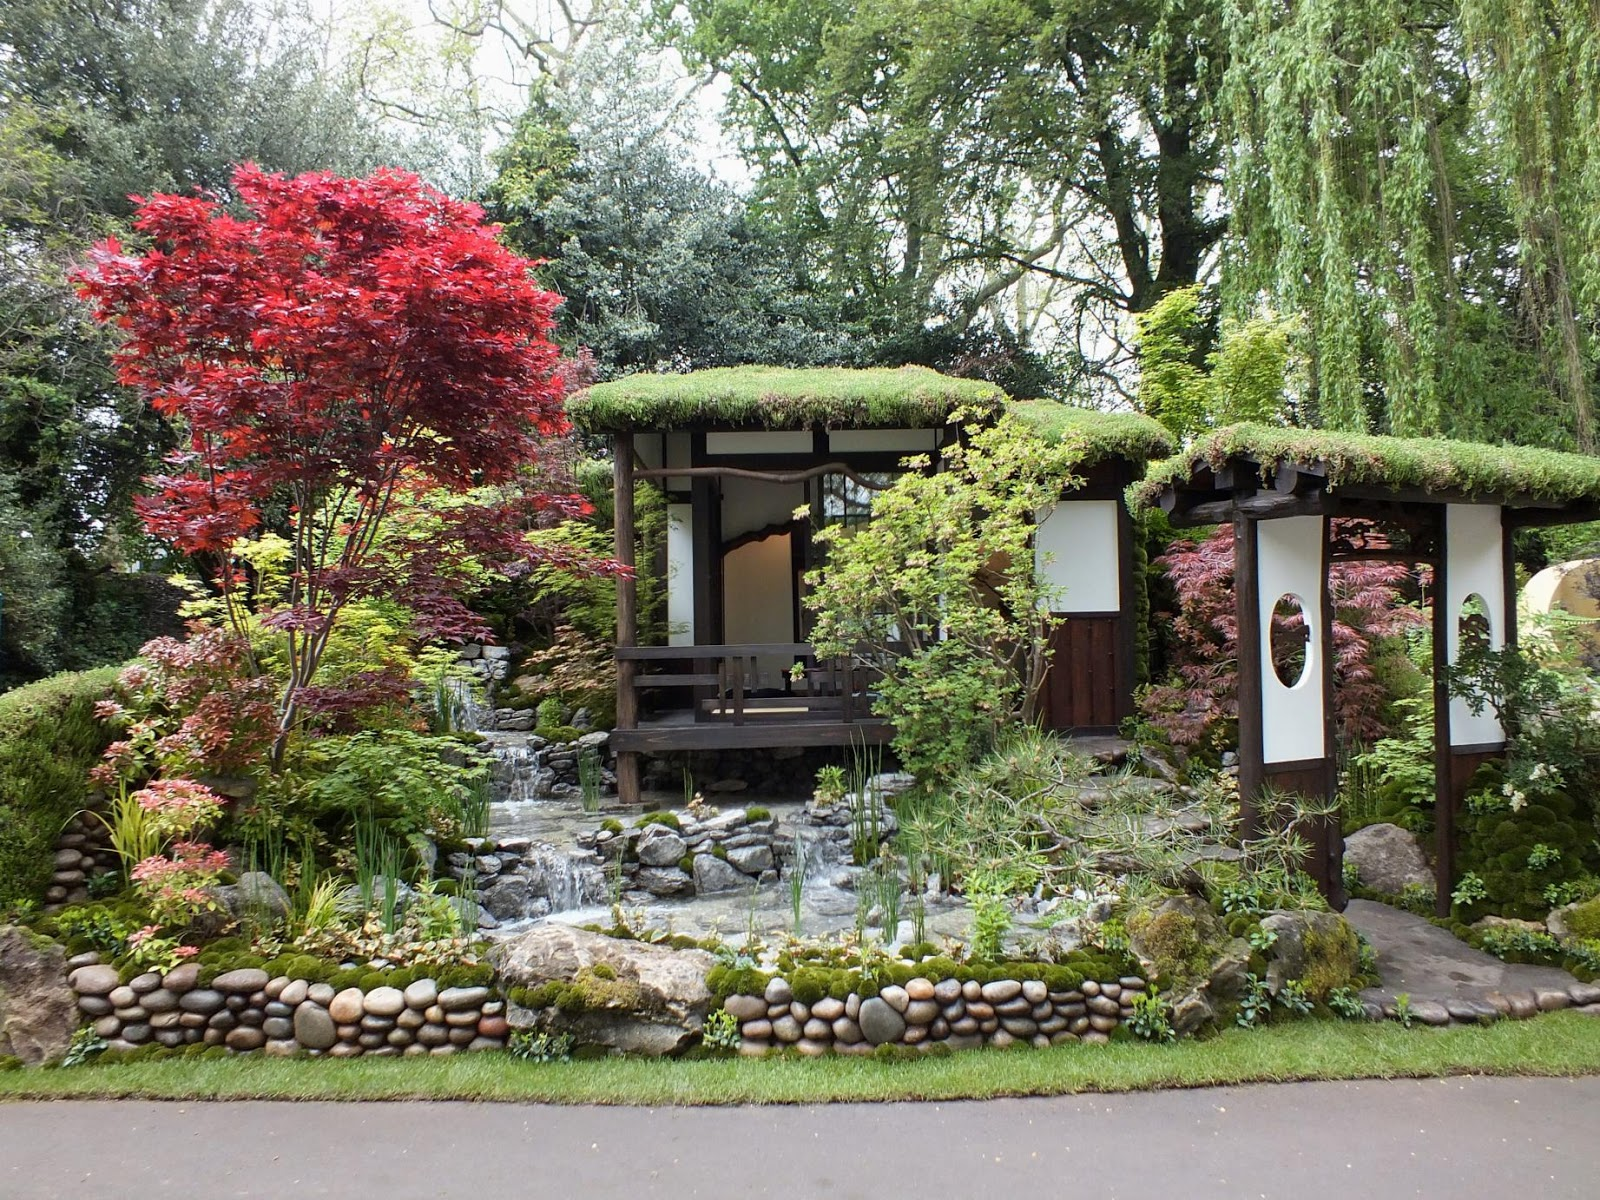 The diligent gardener chelsea 2013 stunning japanese for Flowers for japanese gardens